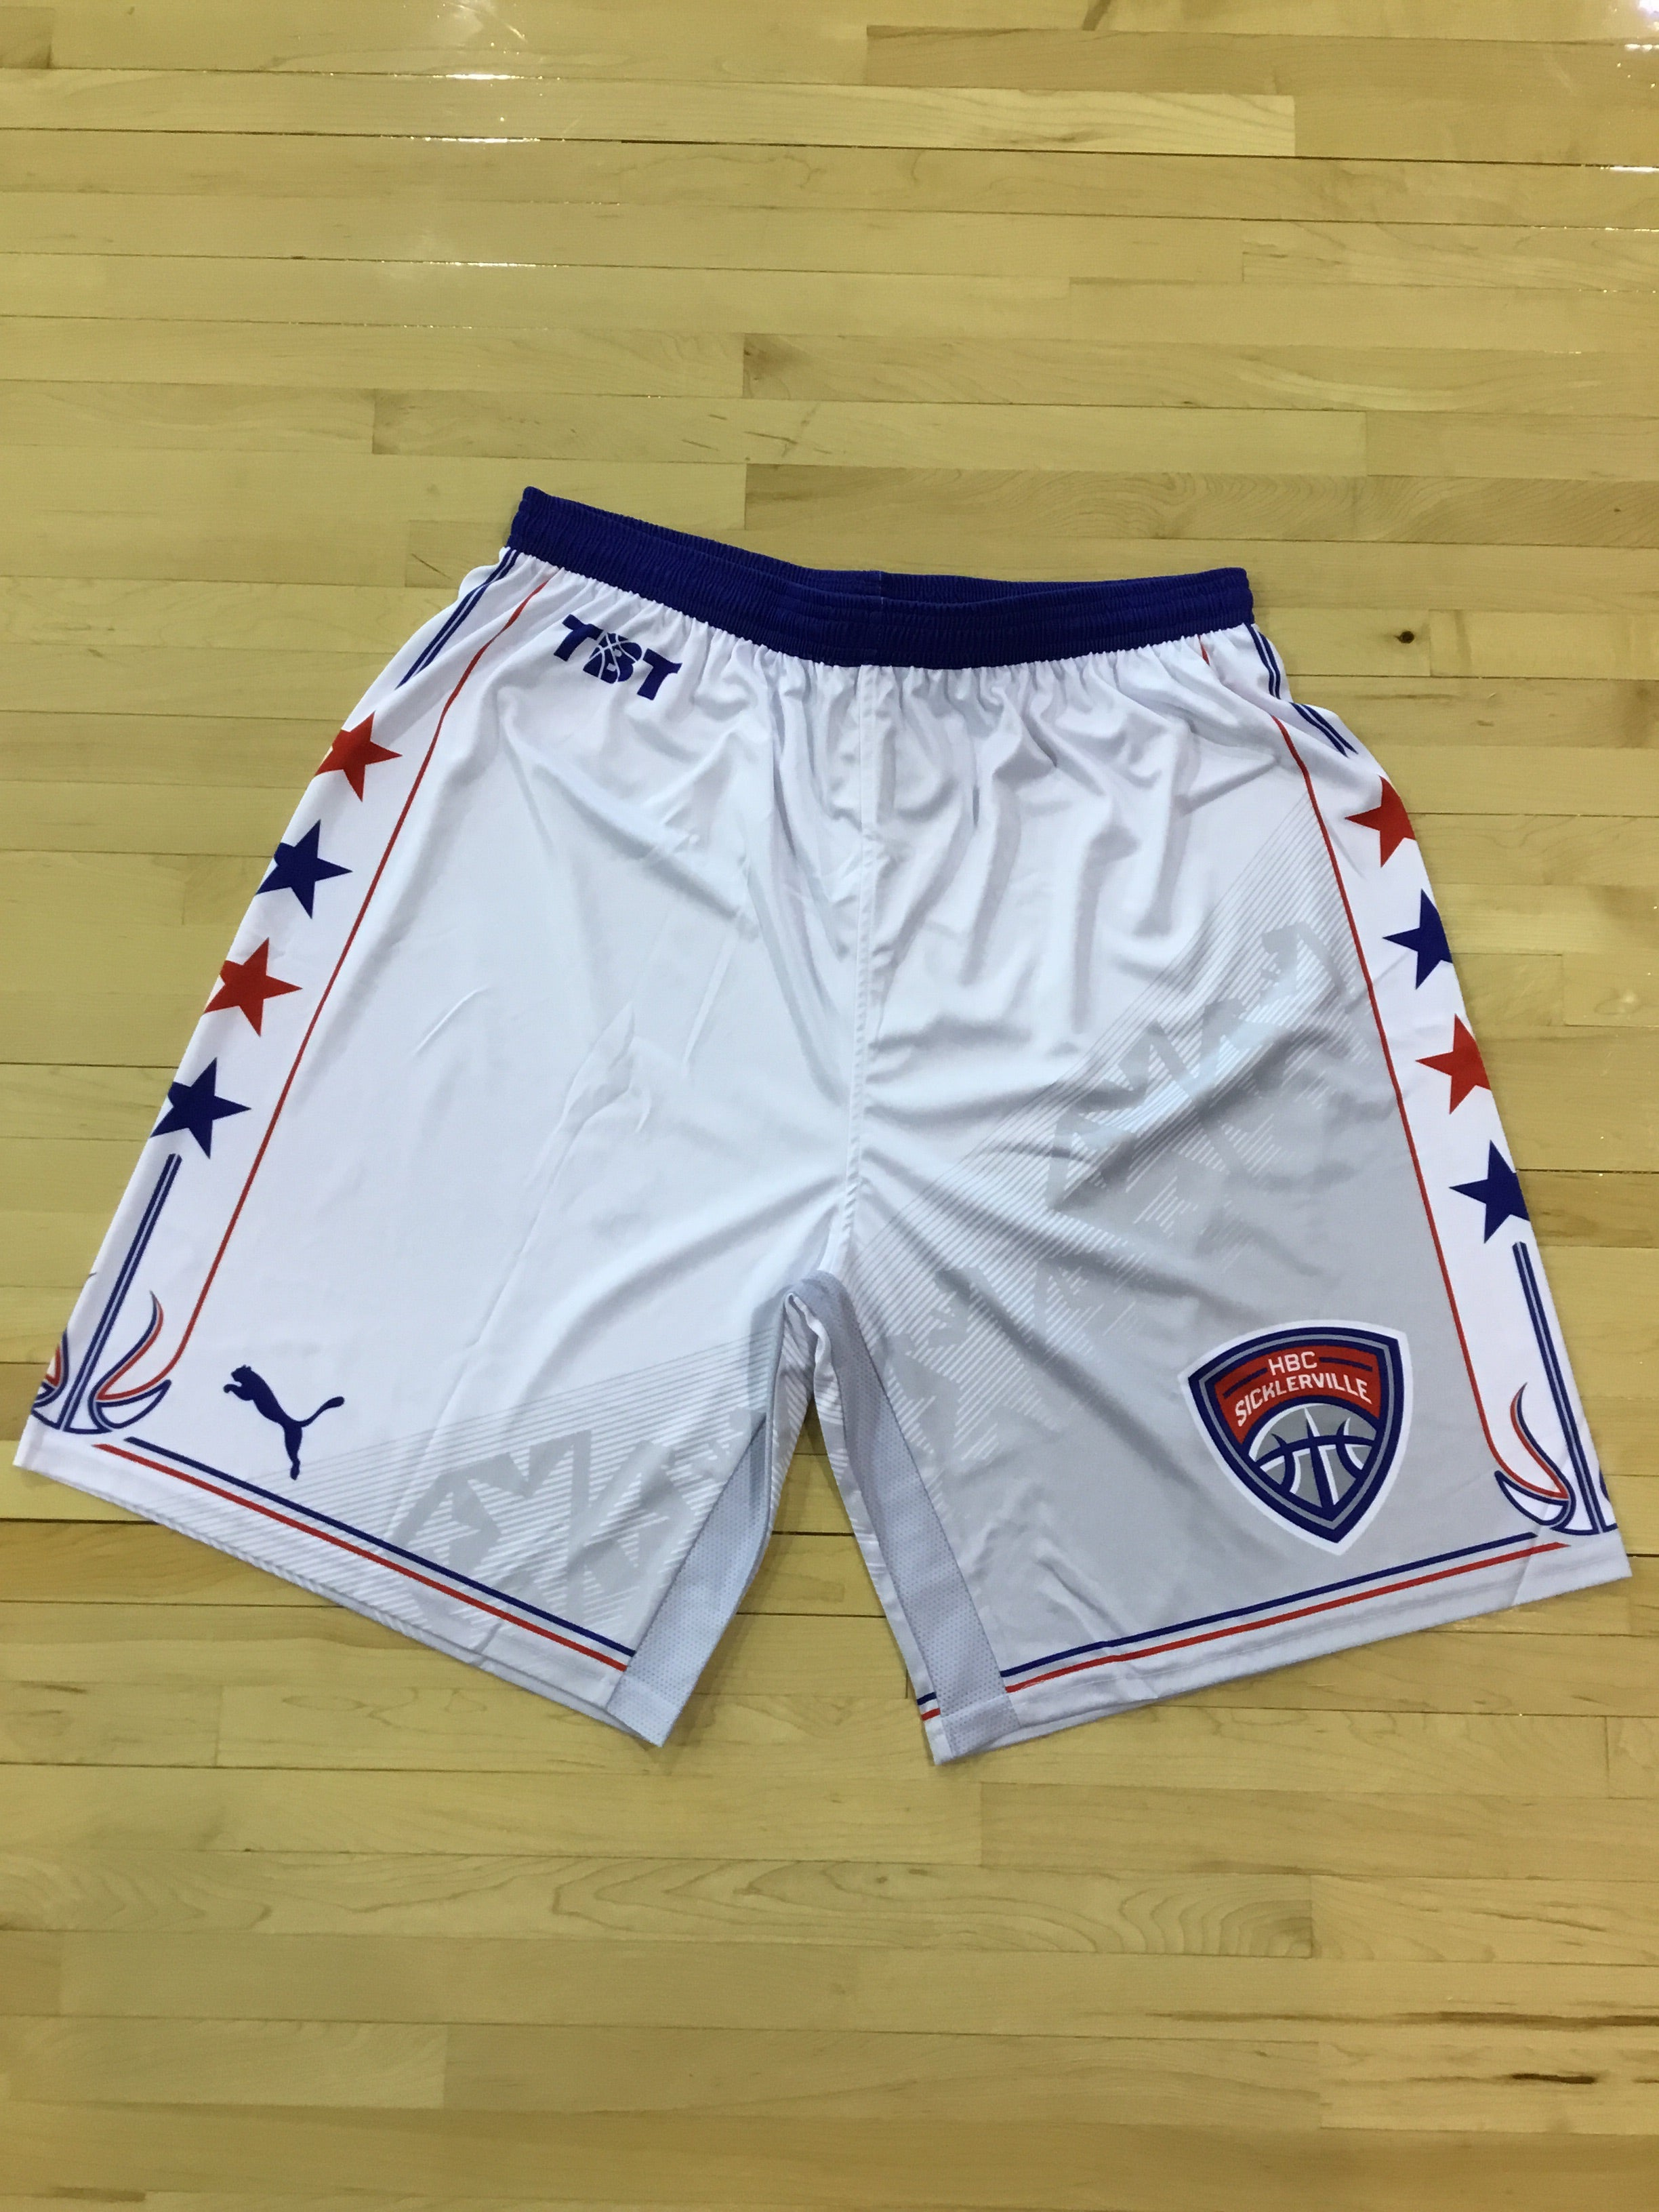 HBC Sicklerville - 2018 Official Team Shorts (White)